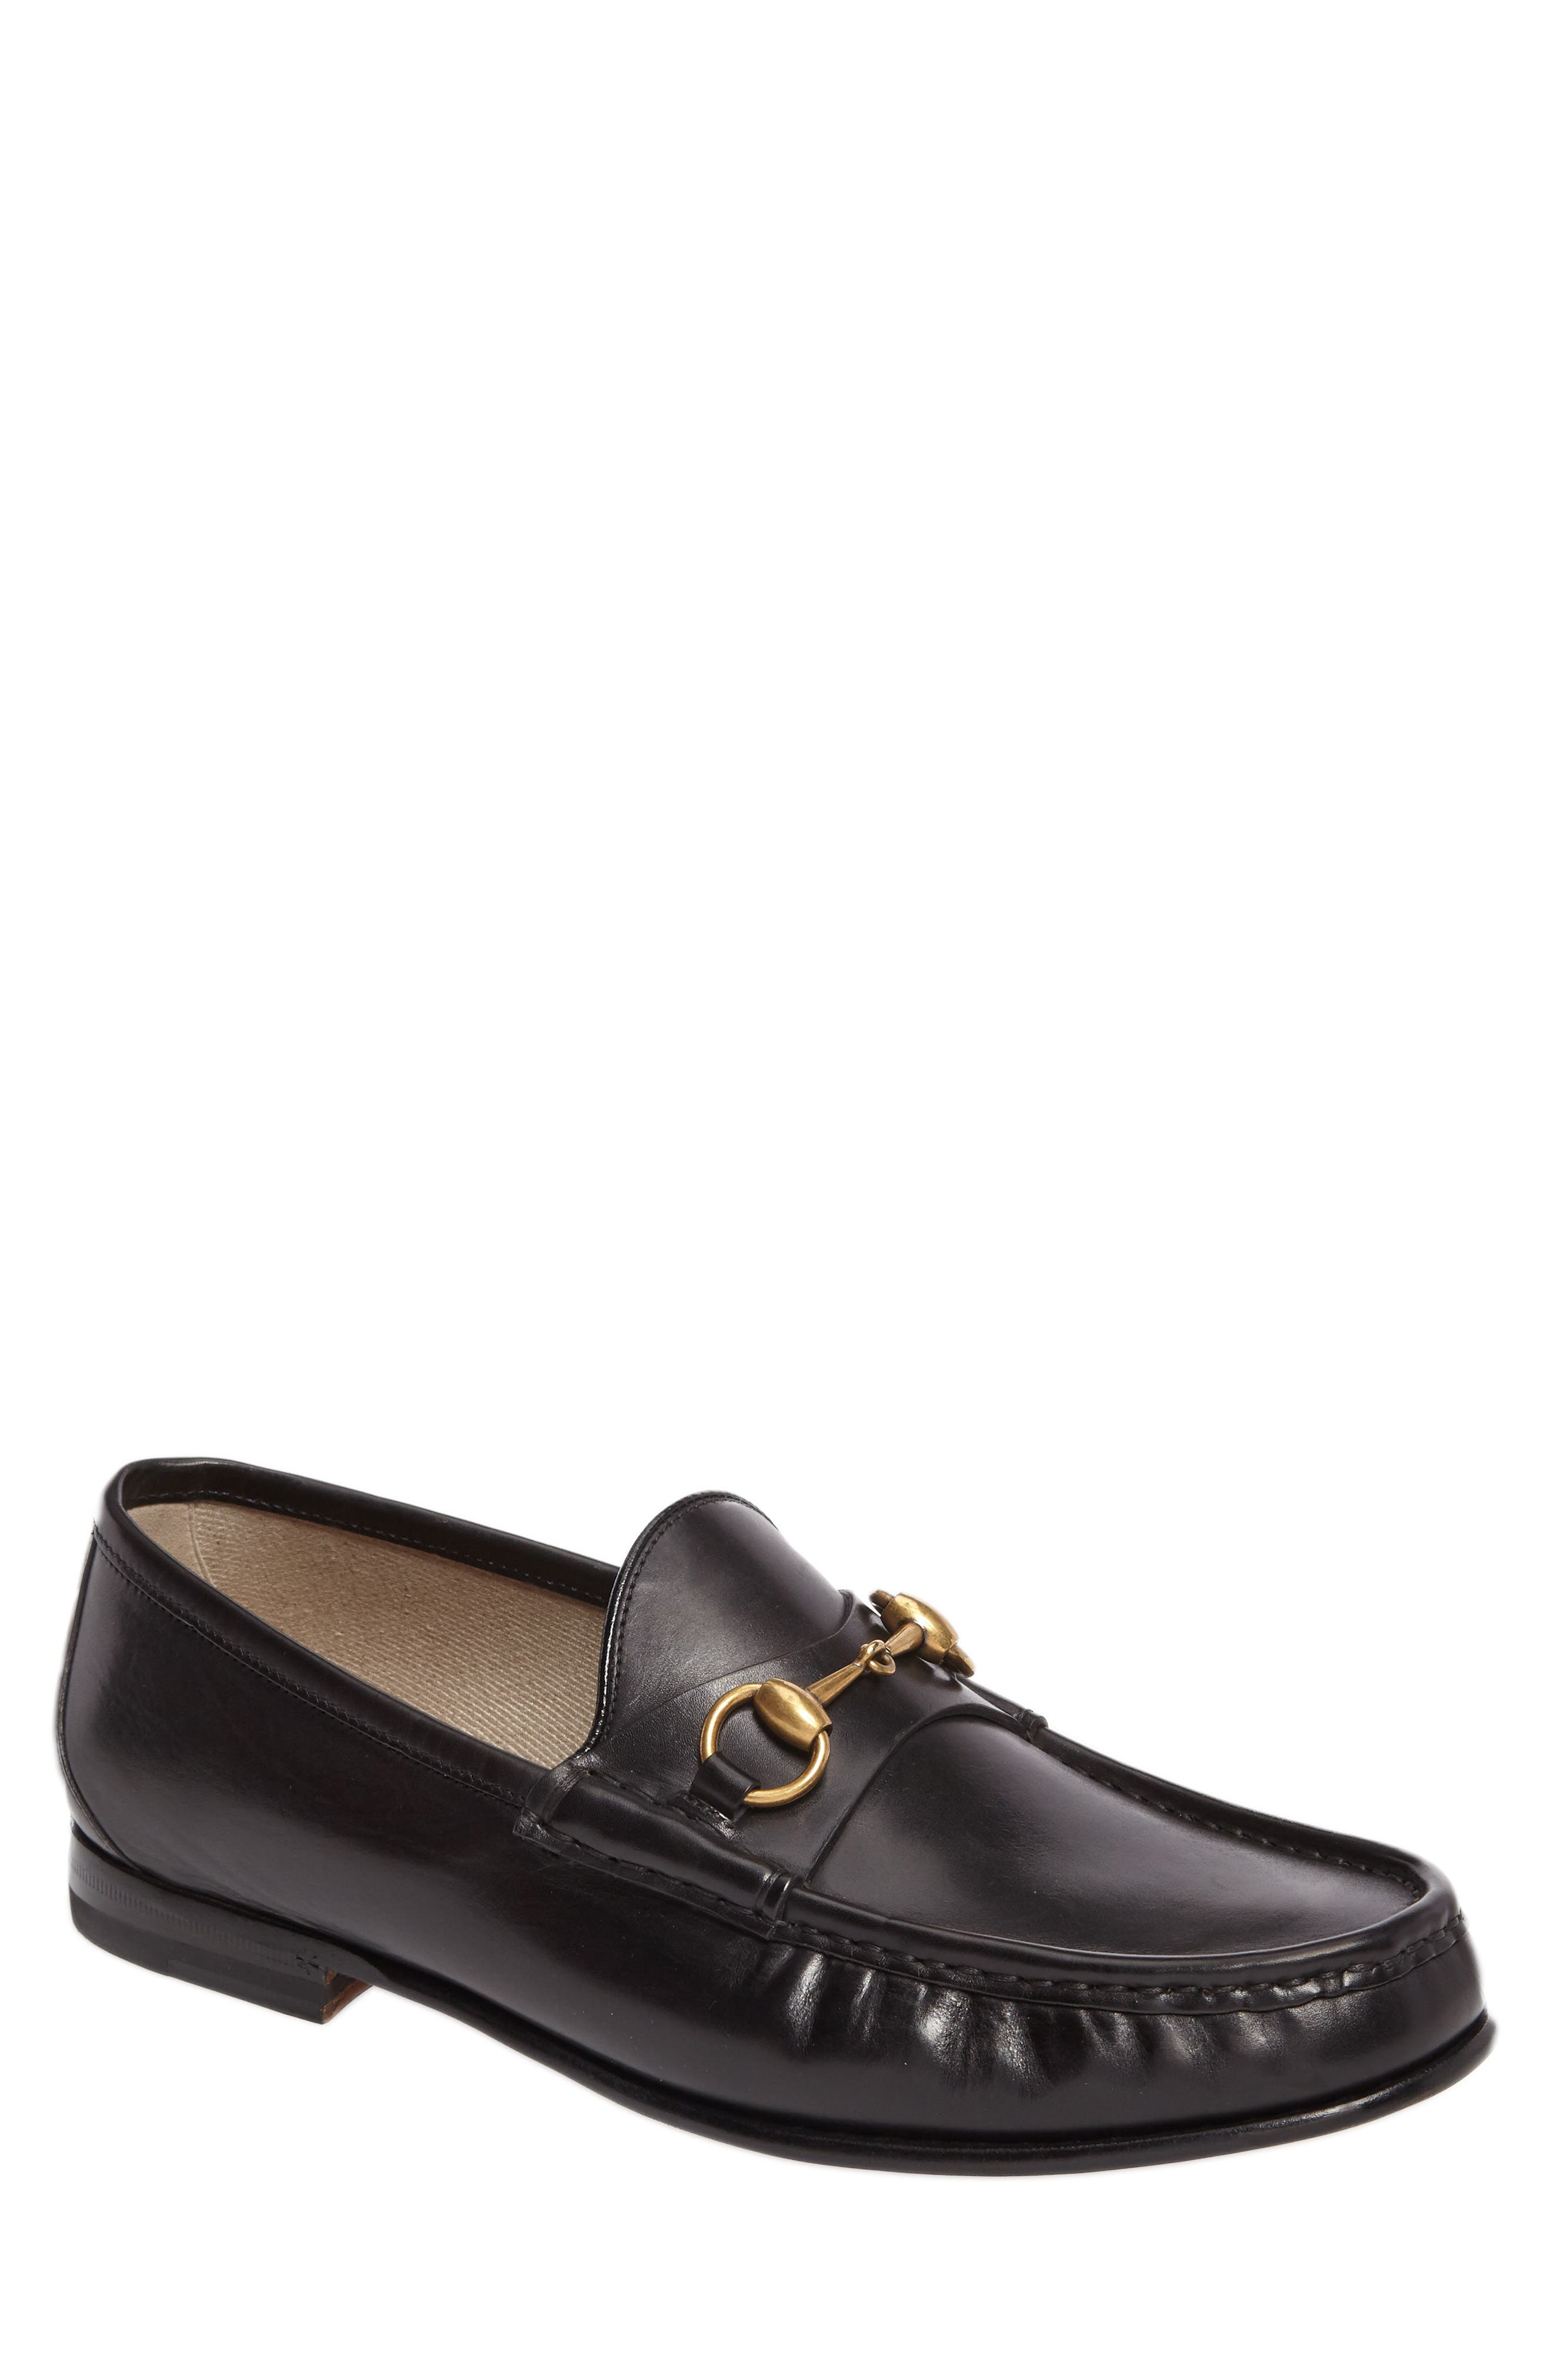 'Roos' Bit Loafer,                             Main thumbnail 1, color,                             Nero